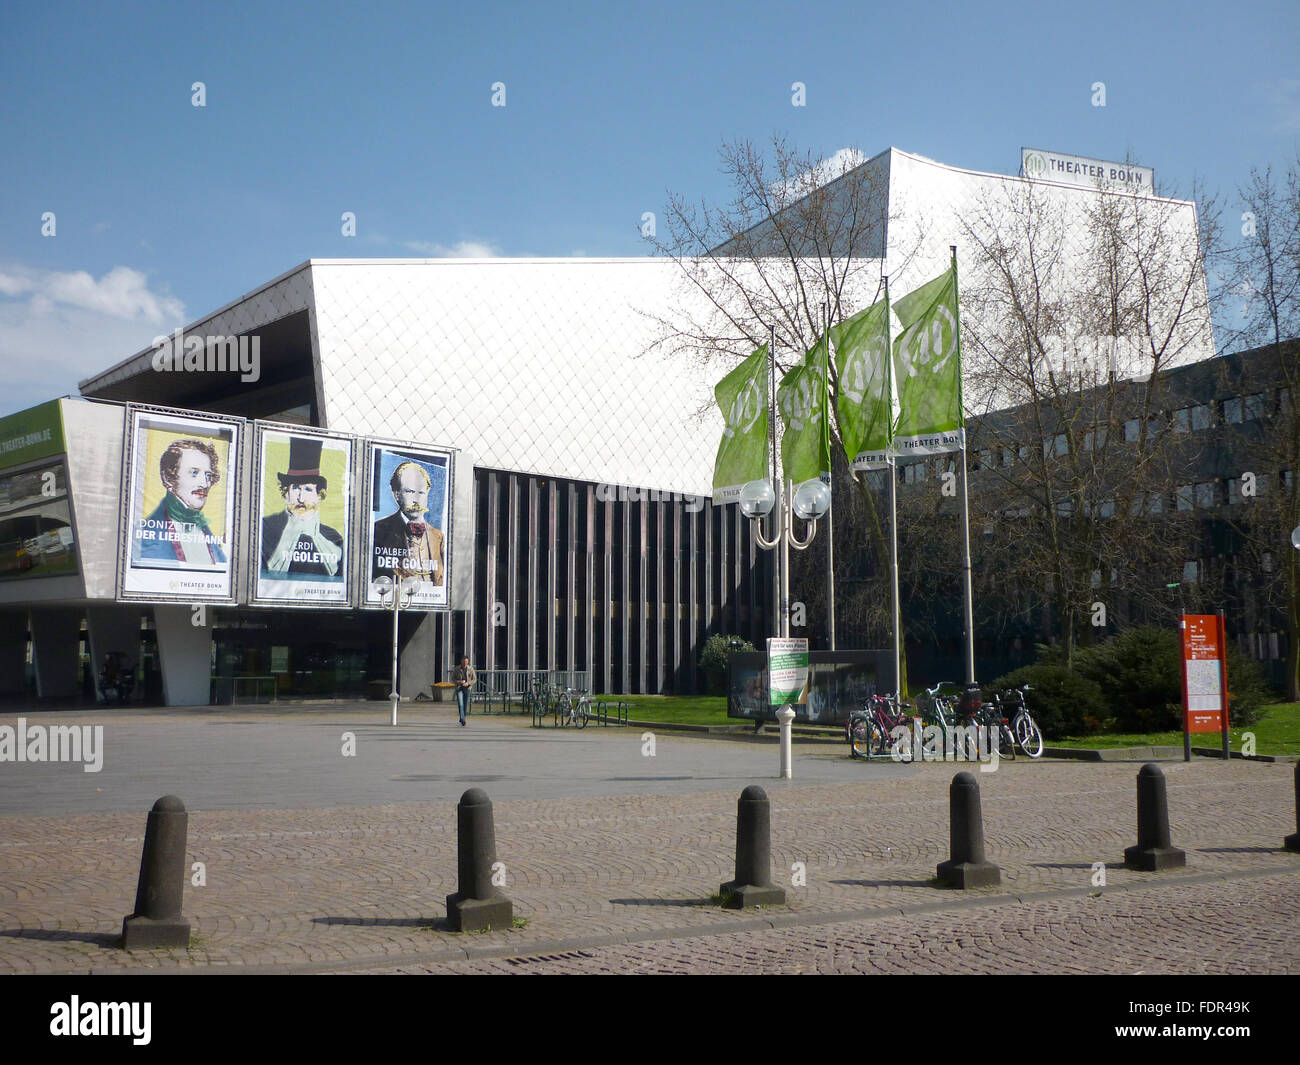 theater,opera,bonn - Stock Image